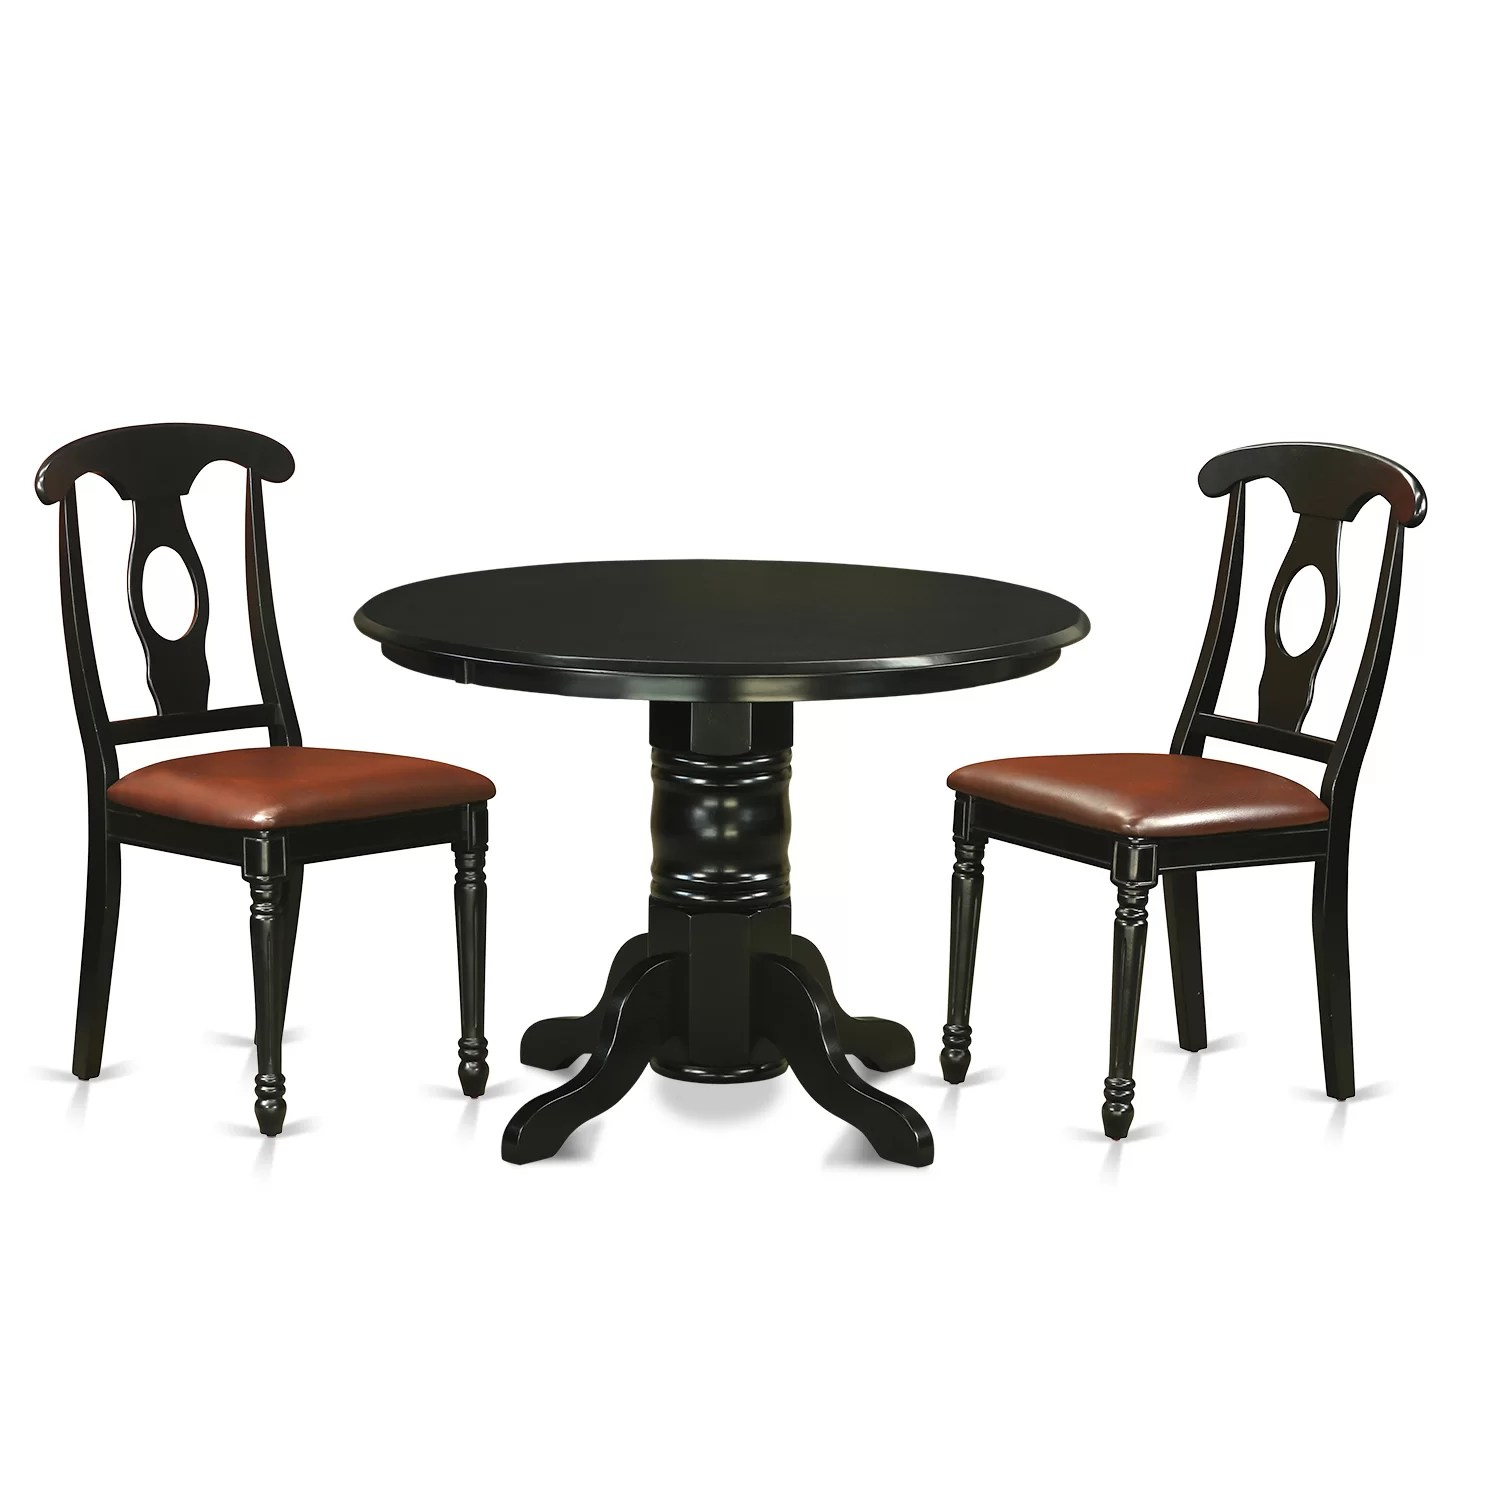 Wayfair Dining Chairs Shelton 3 Piece Dining Set Wayfair